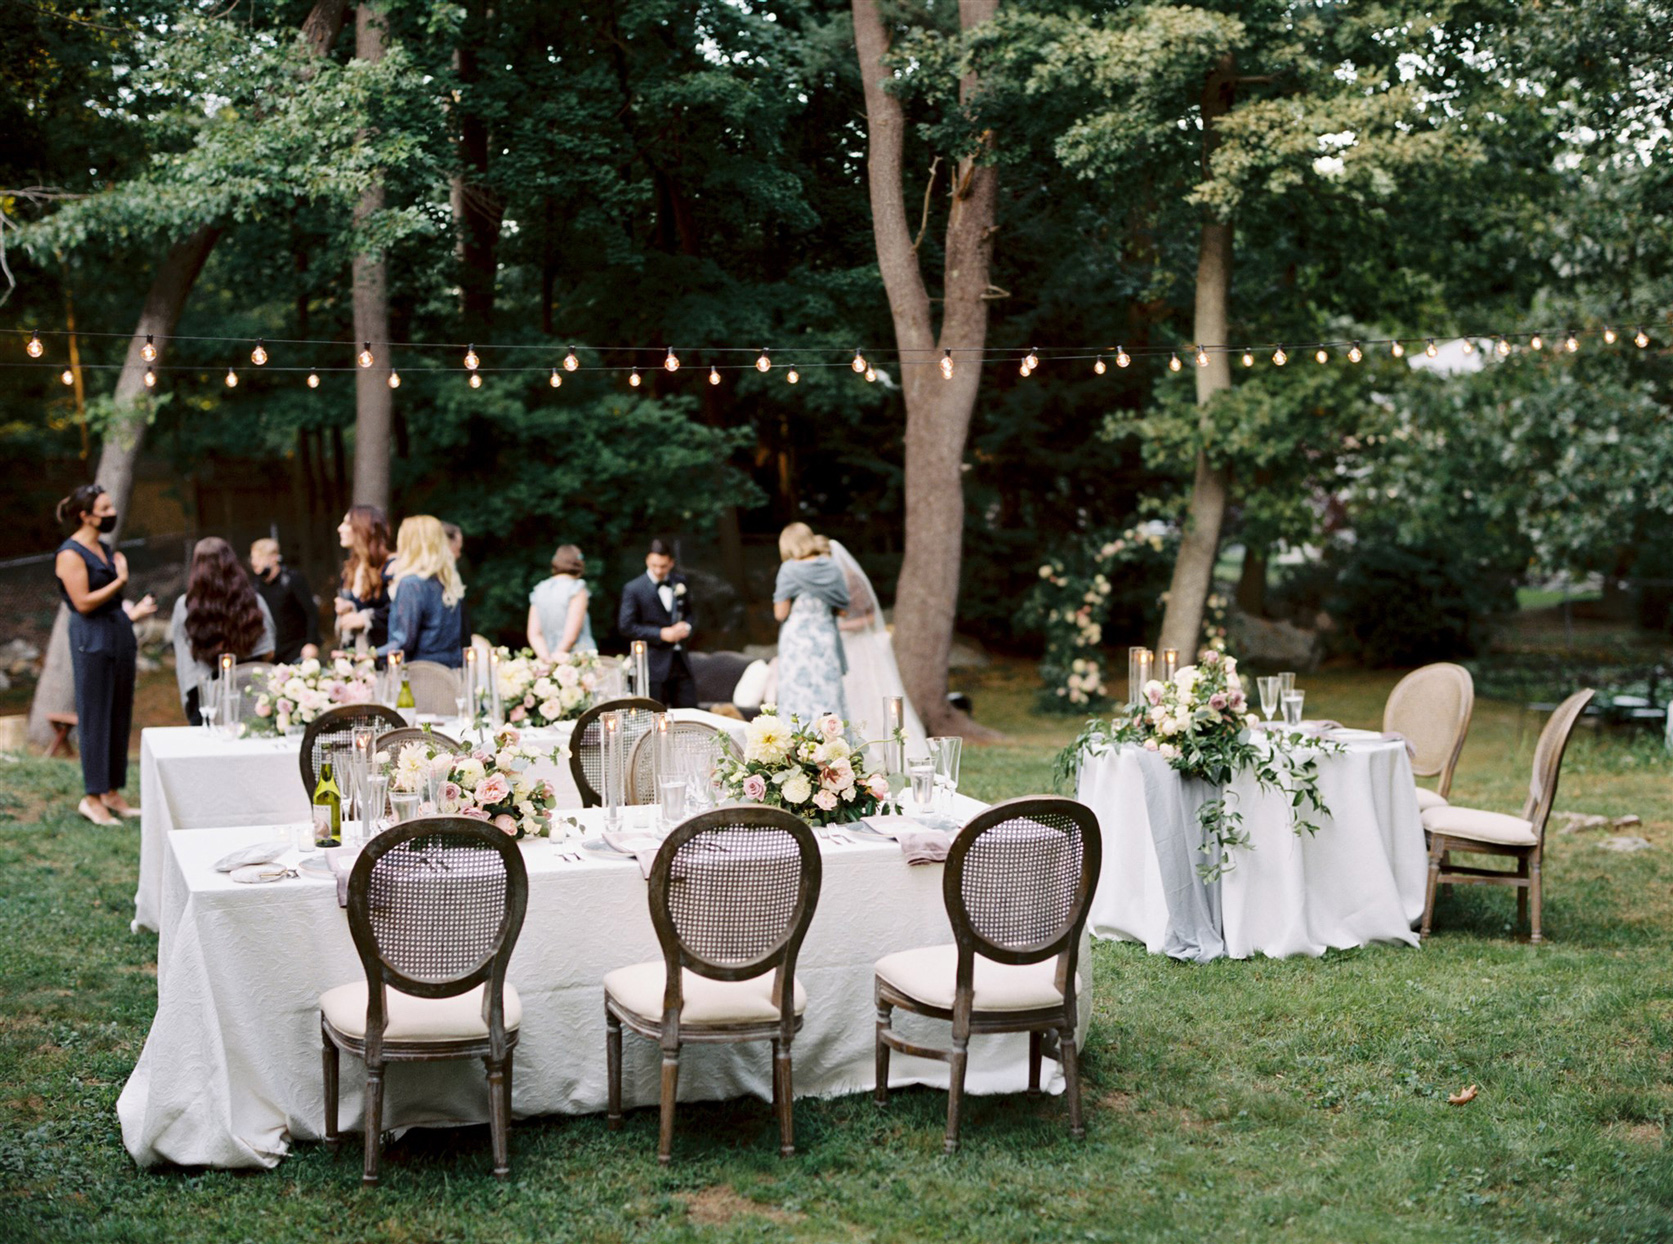 Backyard with decorated tables and string lights